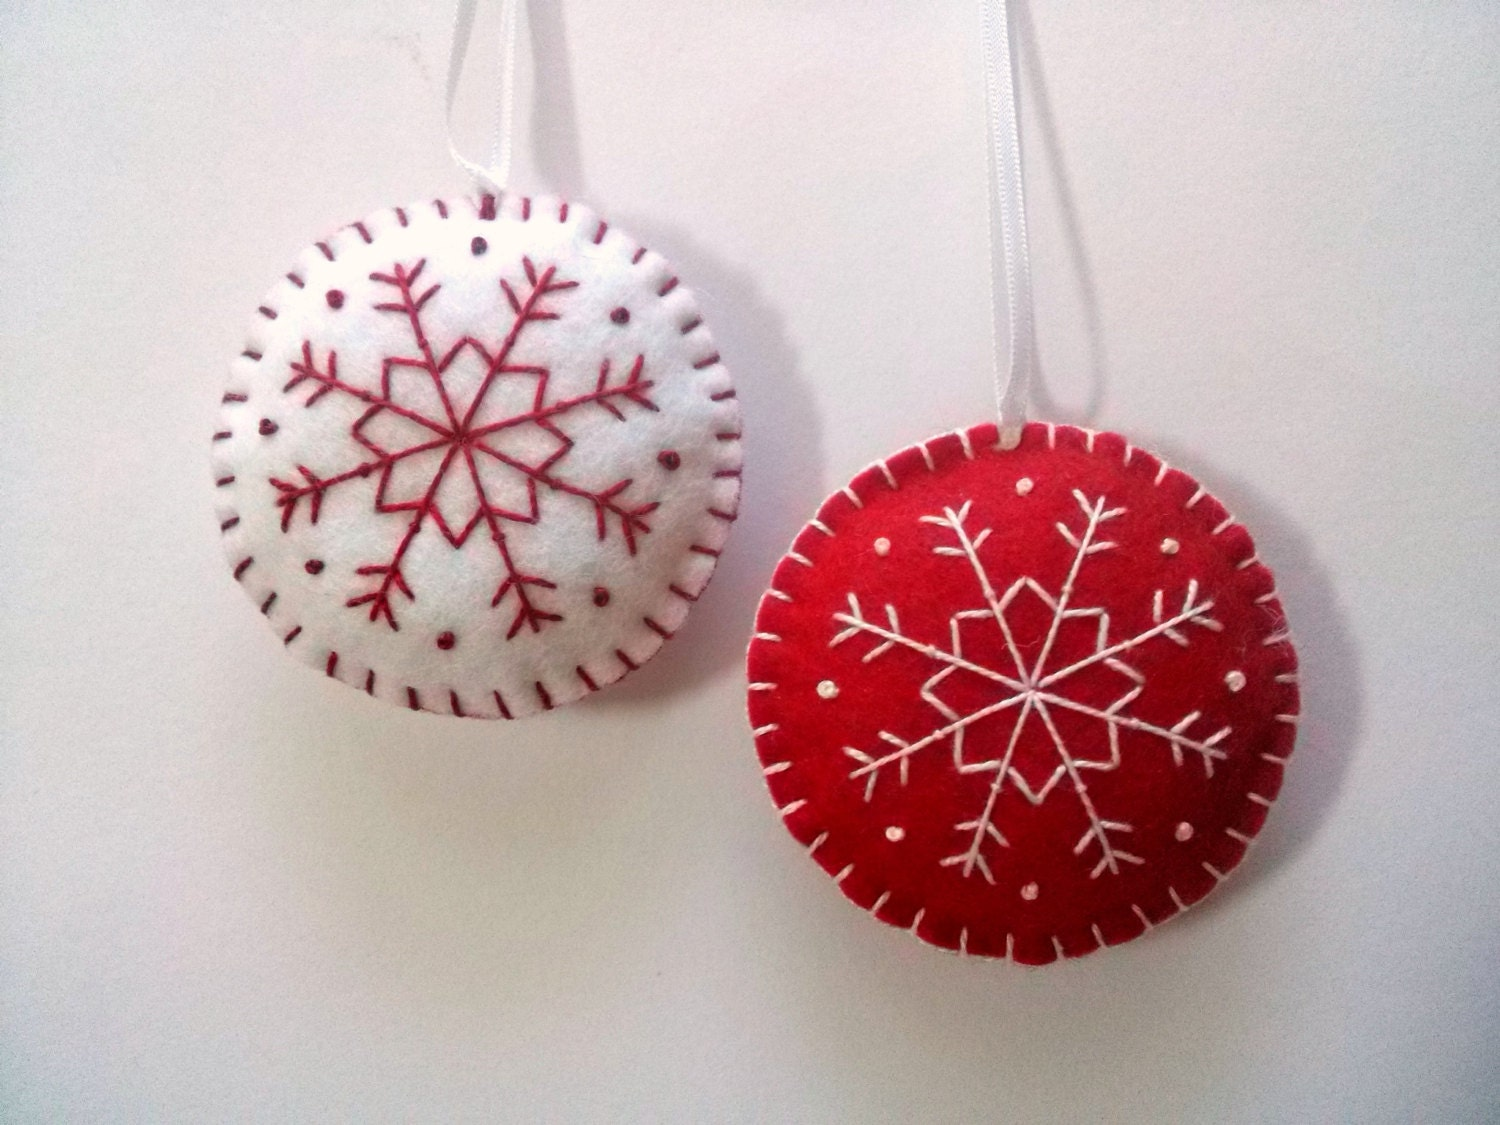 Embroidered christmas ornaments - Felt Red And White Christmas Ornaments Set Of 2 Round Ornaments White And Red Snowflake